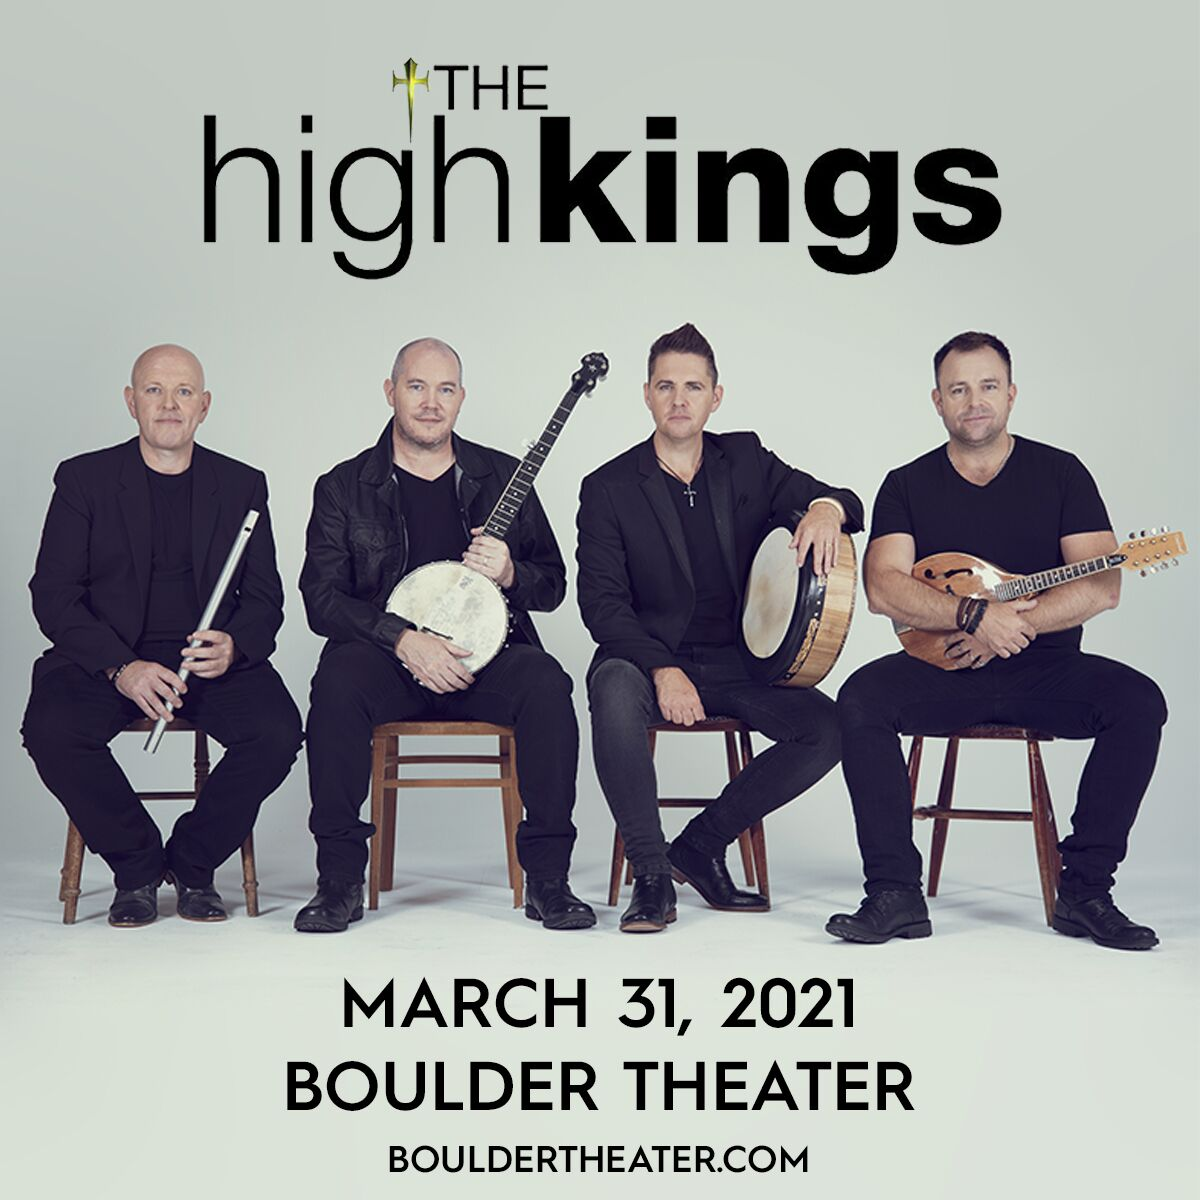 THE HIGH KINGS concert moved to March 31, 2021